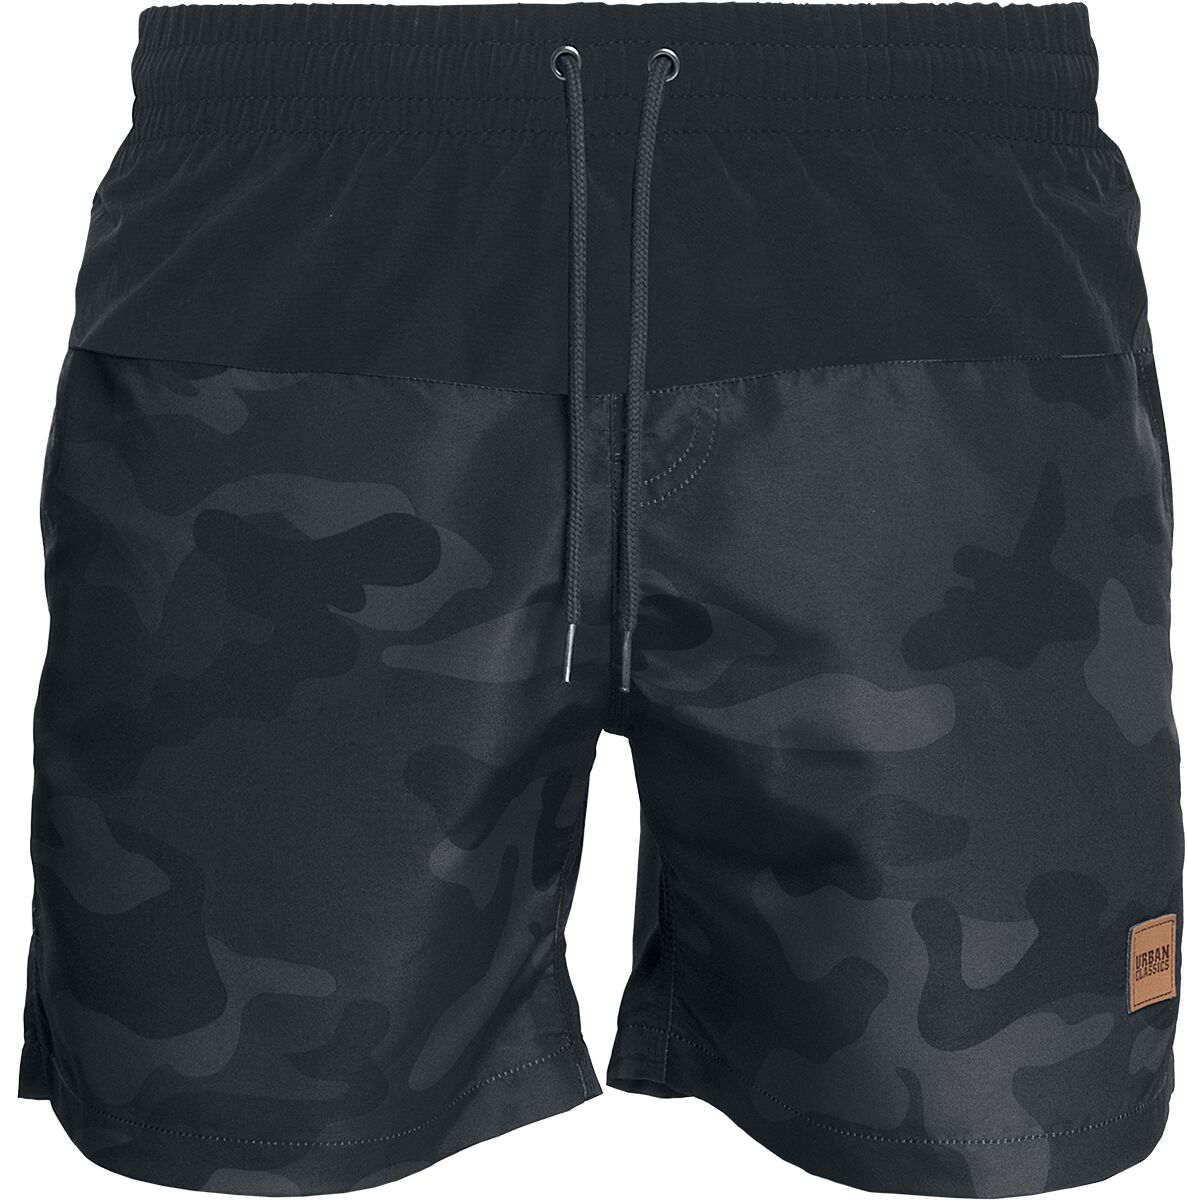 Image of   Urban Classics Block Swim Shorts Badeshorts mørk camo-sort